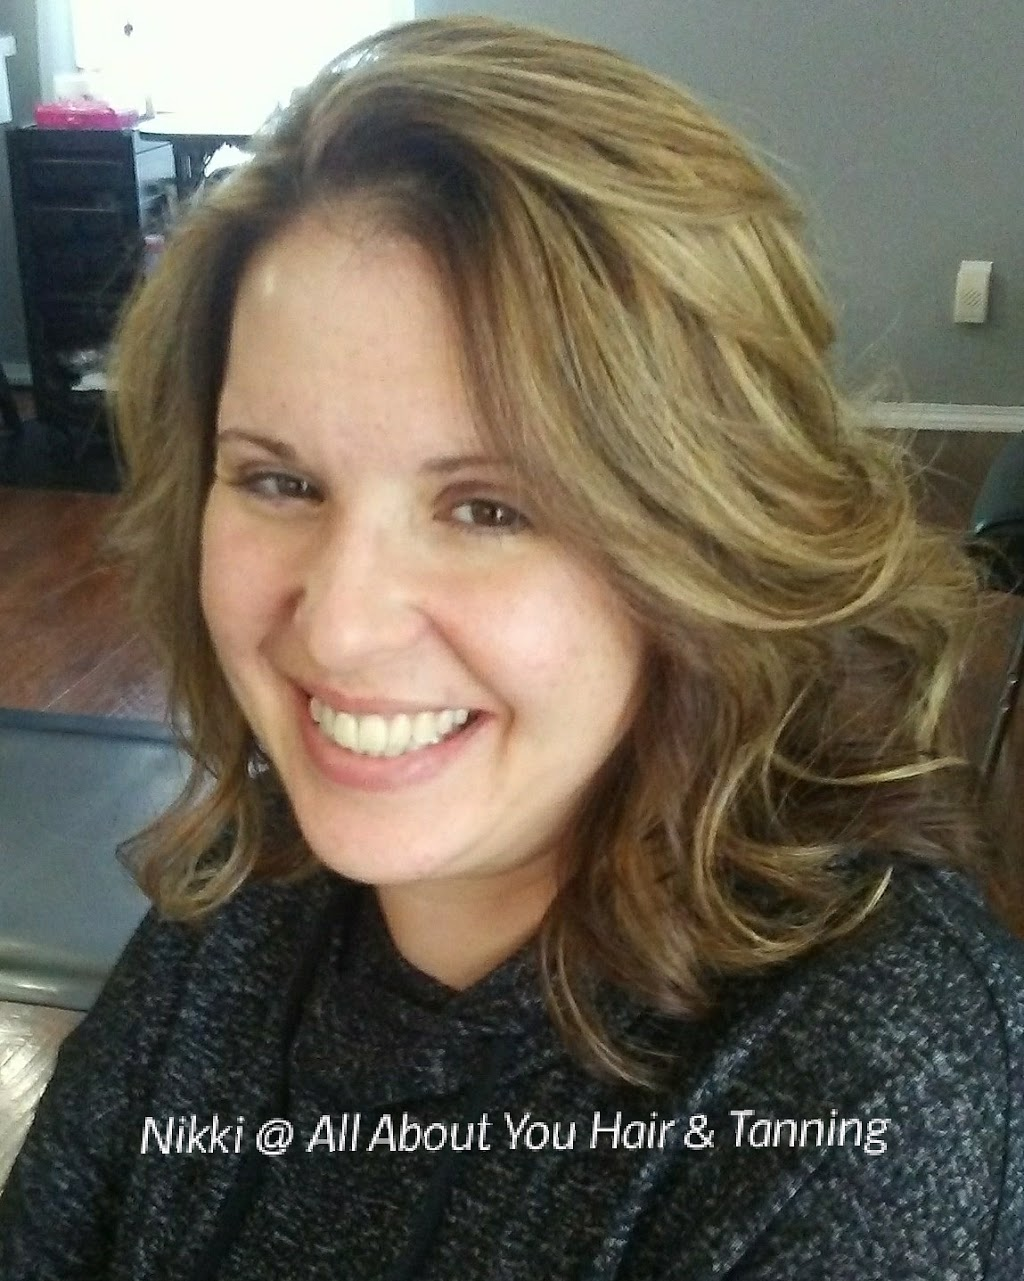 Nikkis Hair Shenanigans at All About You Hair And Tanning Salon - hair care  | Photo 3 of 10 | Address: 9227 County Line Rd, De Motte, IN 46310, USA | Phone: (765) 761-7119